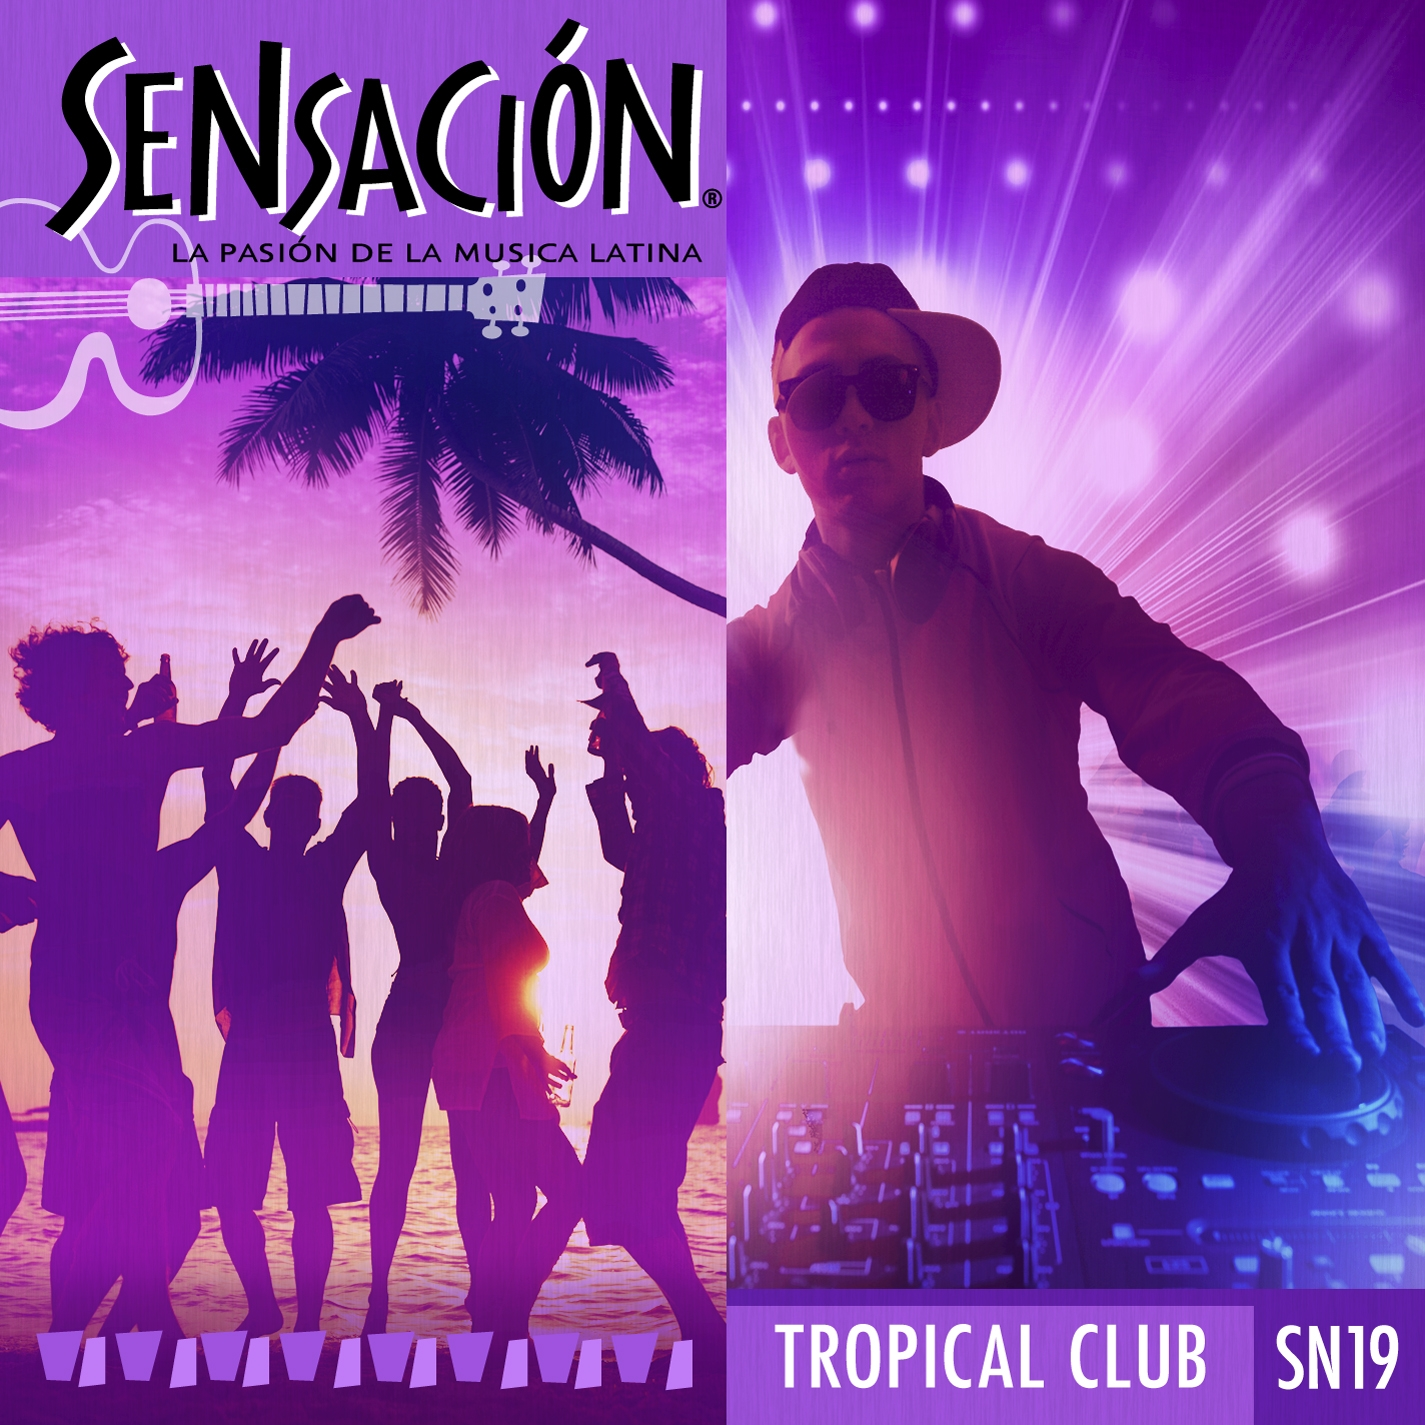 Tropical Club